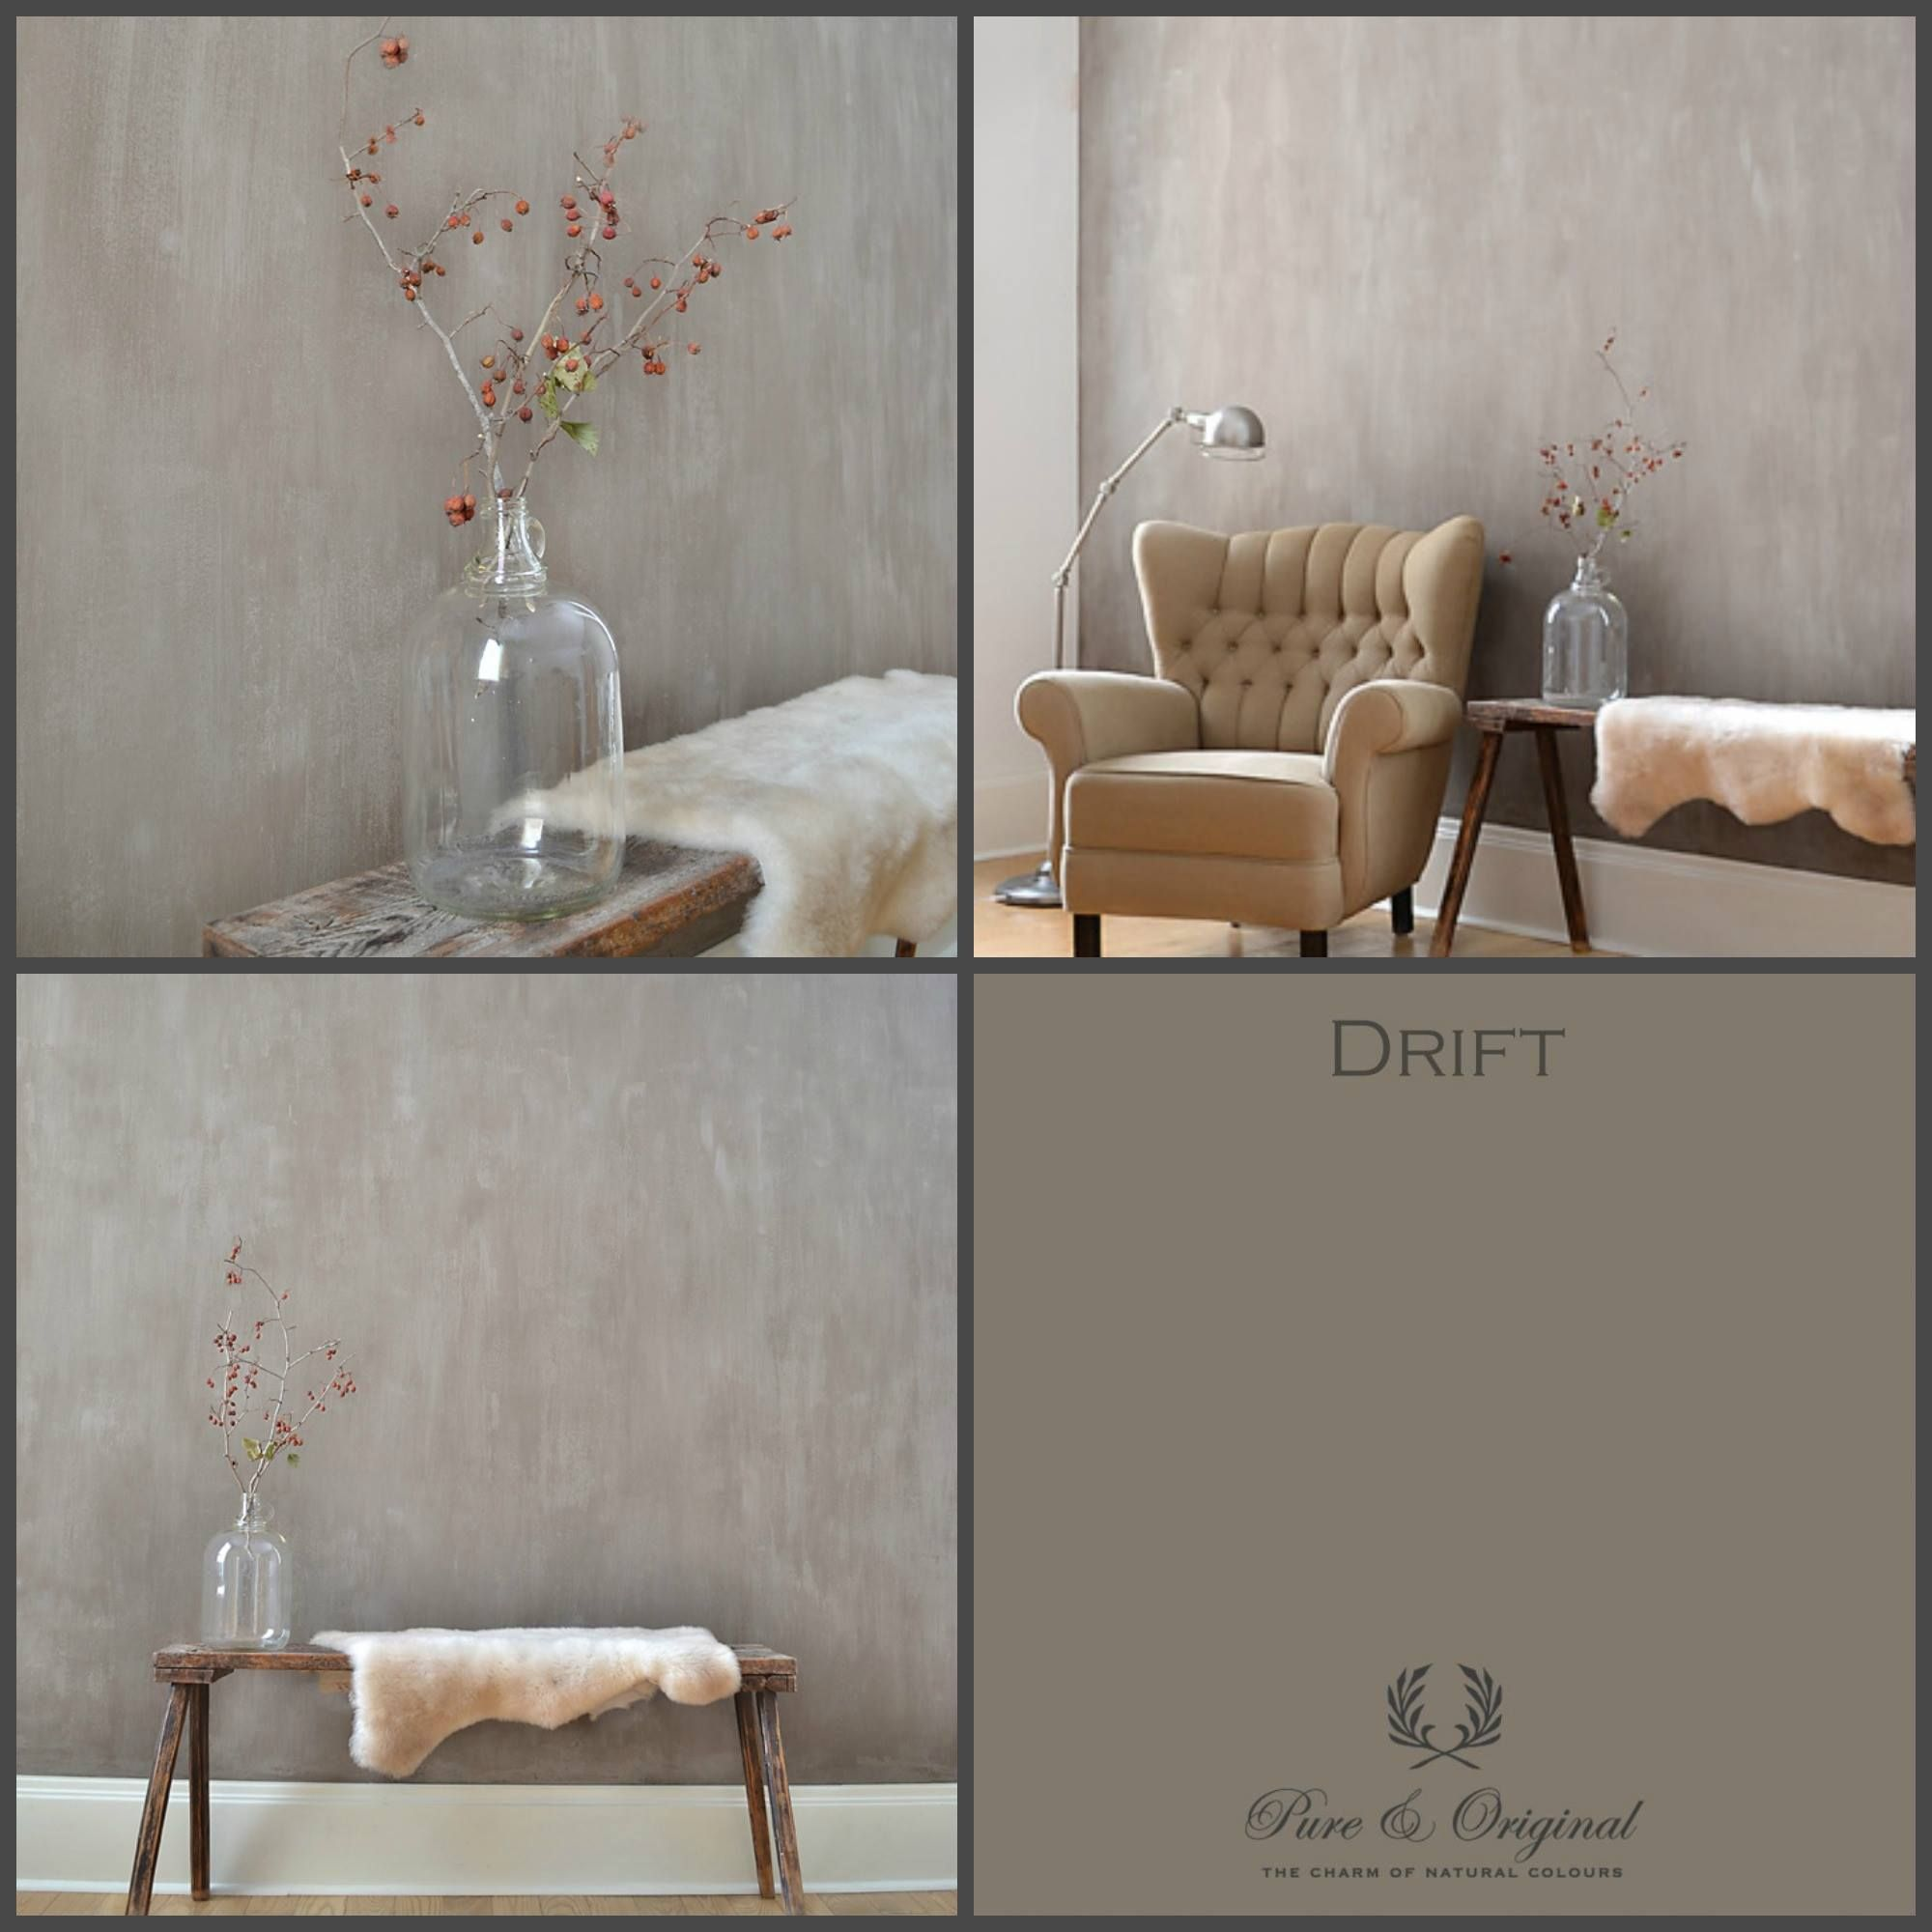 credits home interiors by agnes fresco limepaint color drift pure original authentic. Black Bedroom Furniture Sets. Home Design Ideas